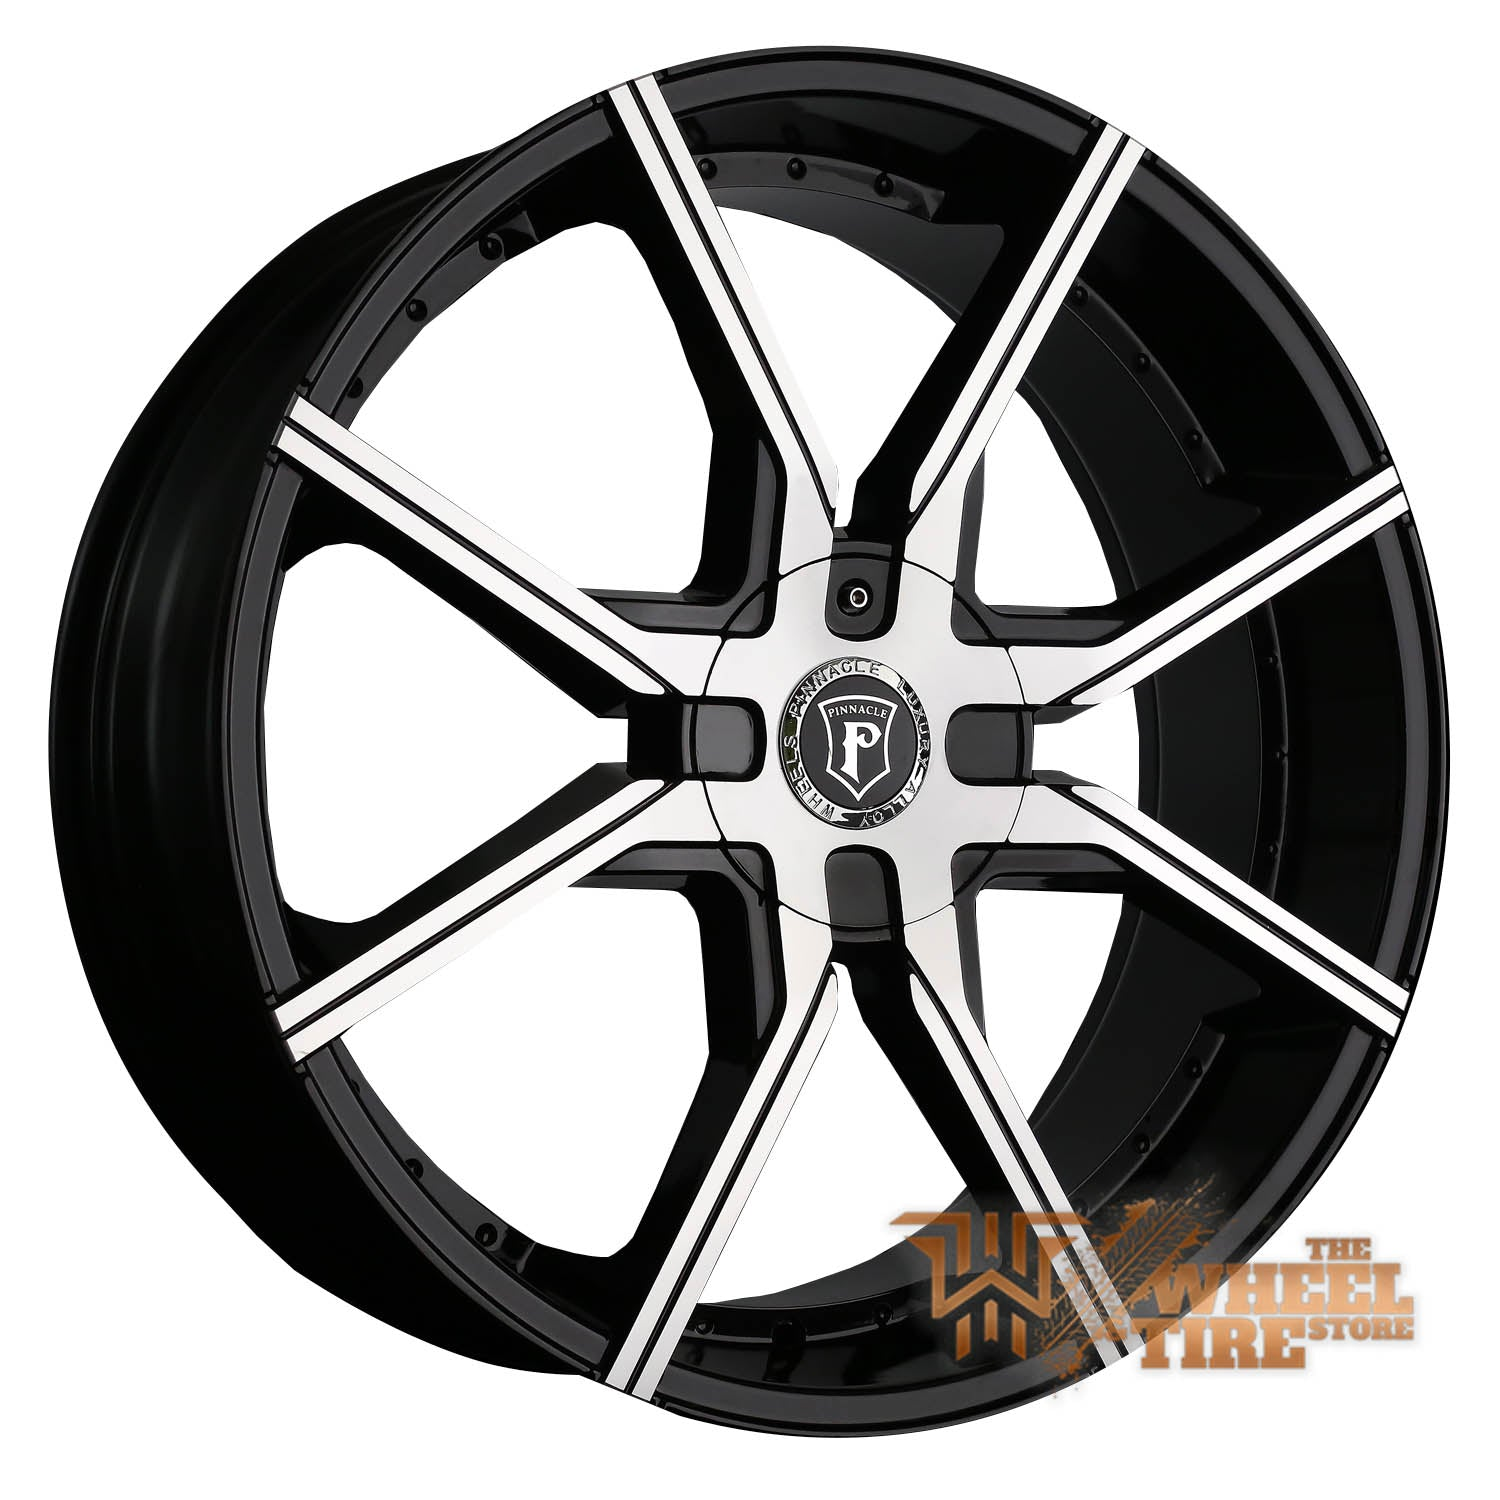 Pinnacle P96 'Hype' Wheel in Gloss Black Machined (Set of 4)